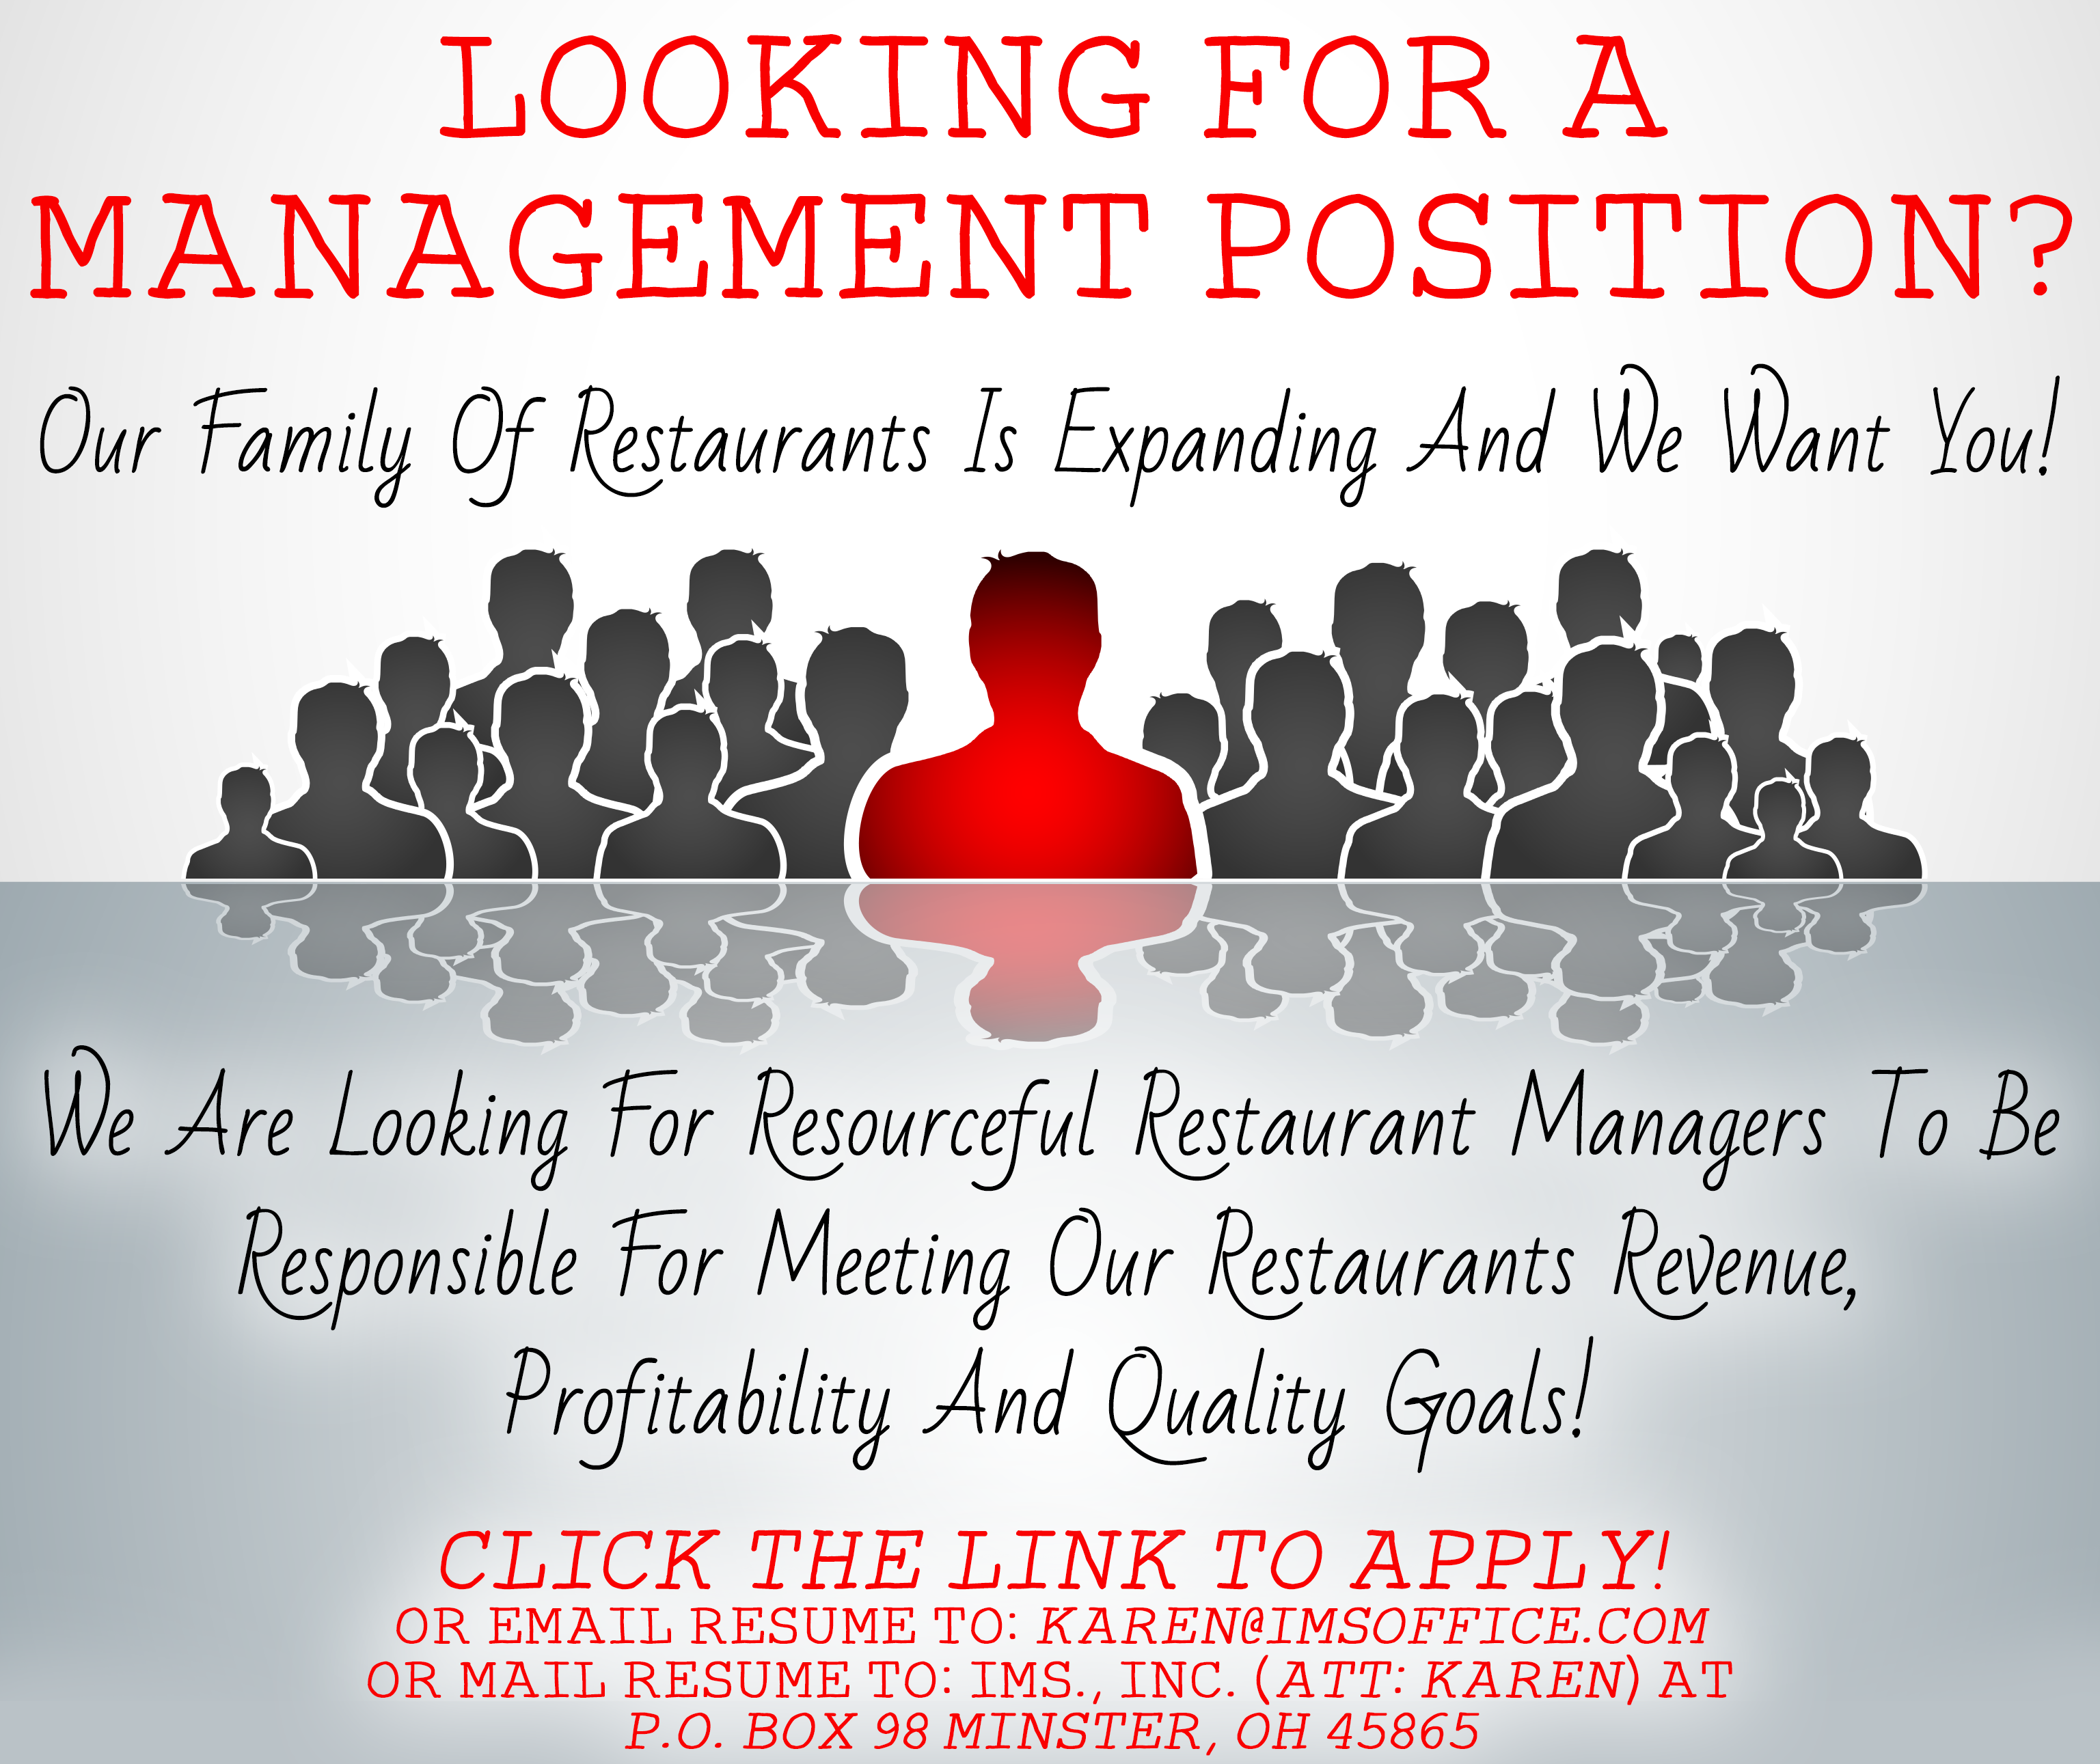 Looking for a management position? Our family of restaurants is expanding and we want you! We are looking for resourceful restaurant managers to be responsible for meeting our restaurants revenue, profitability and quality goals! Click the link to apply! or email resume to: karen@imsoffice.com or mail resume to: IMS., INC. (Att: Karen) at P.O. Box 98 Minster, OH 45865.